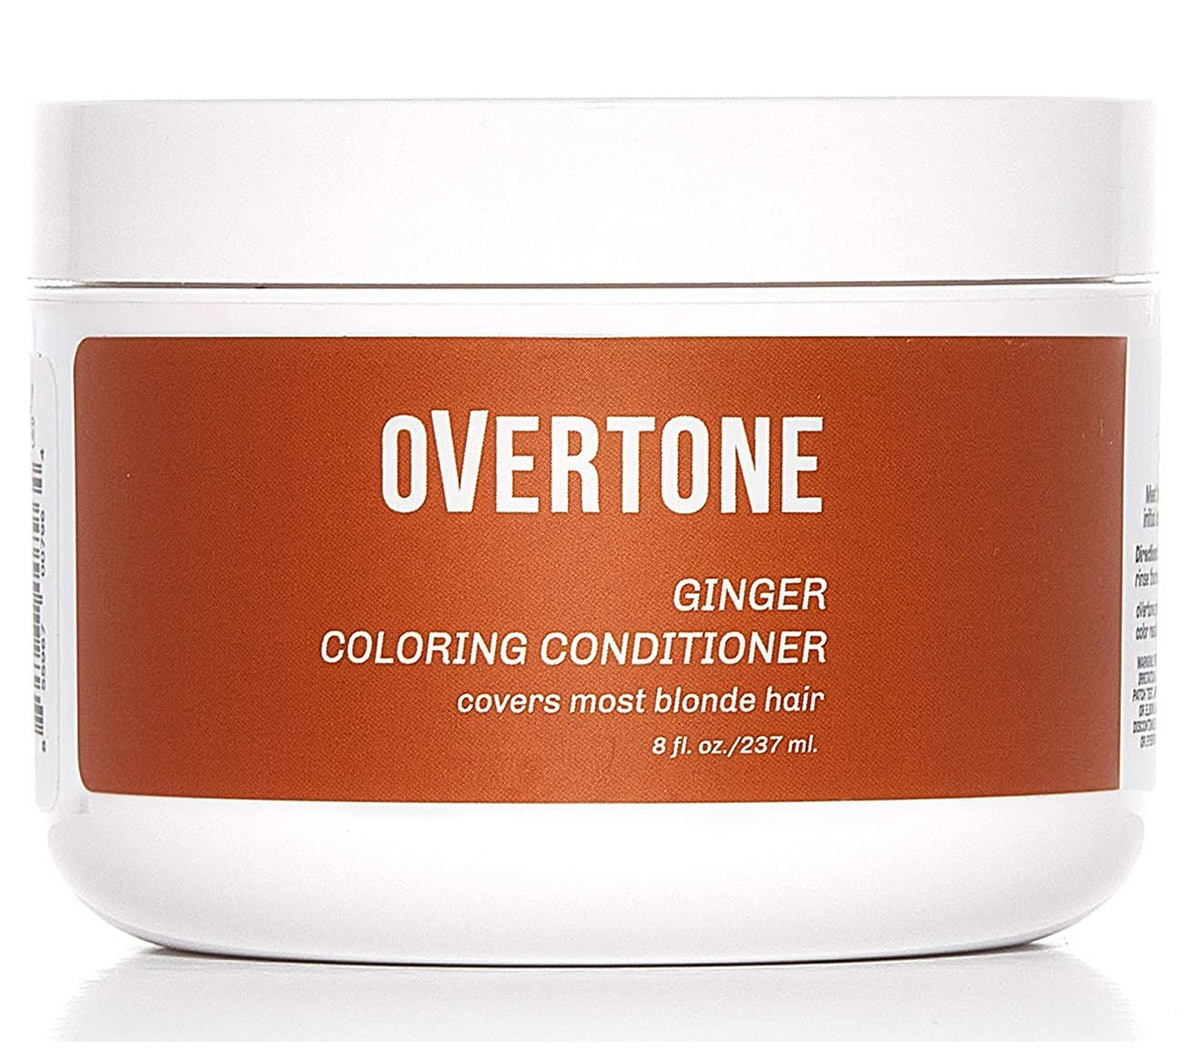 oVertone Haircare Ginger Coloring Conditioner